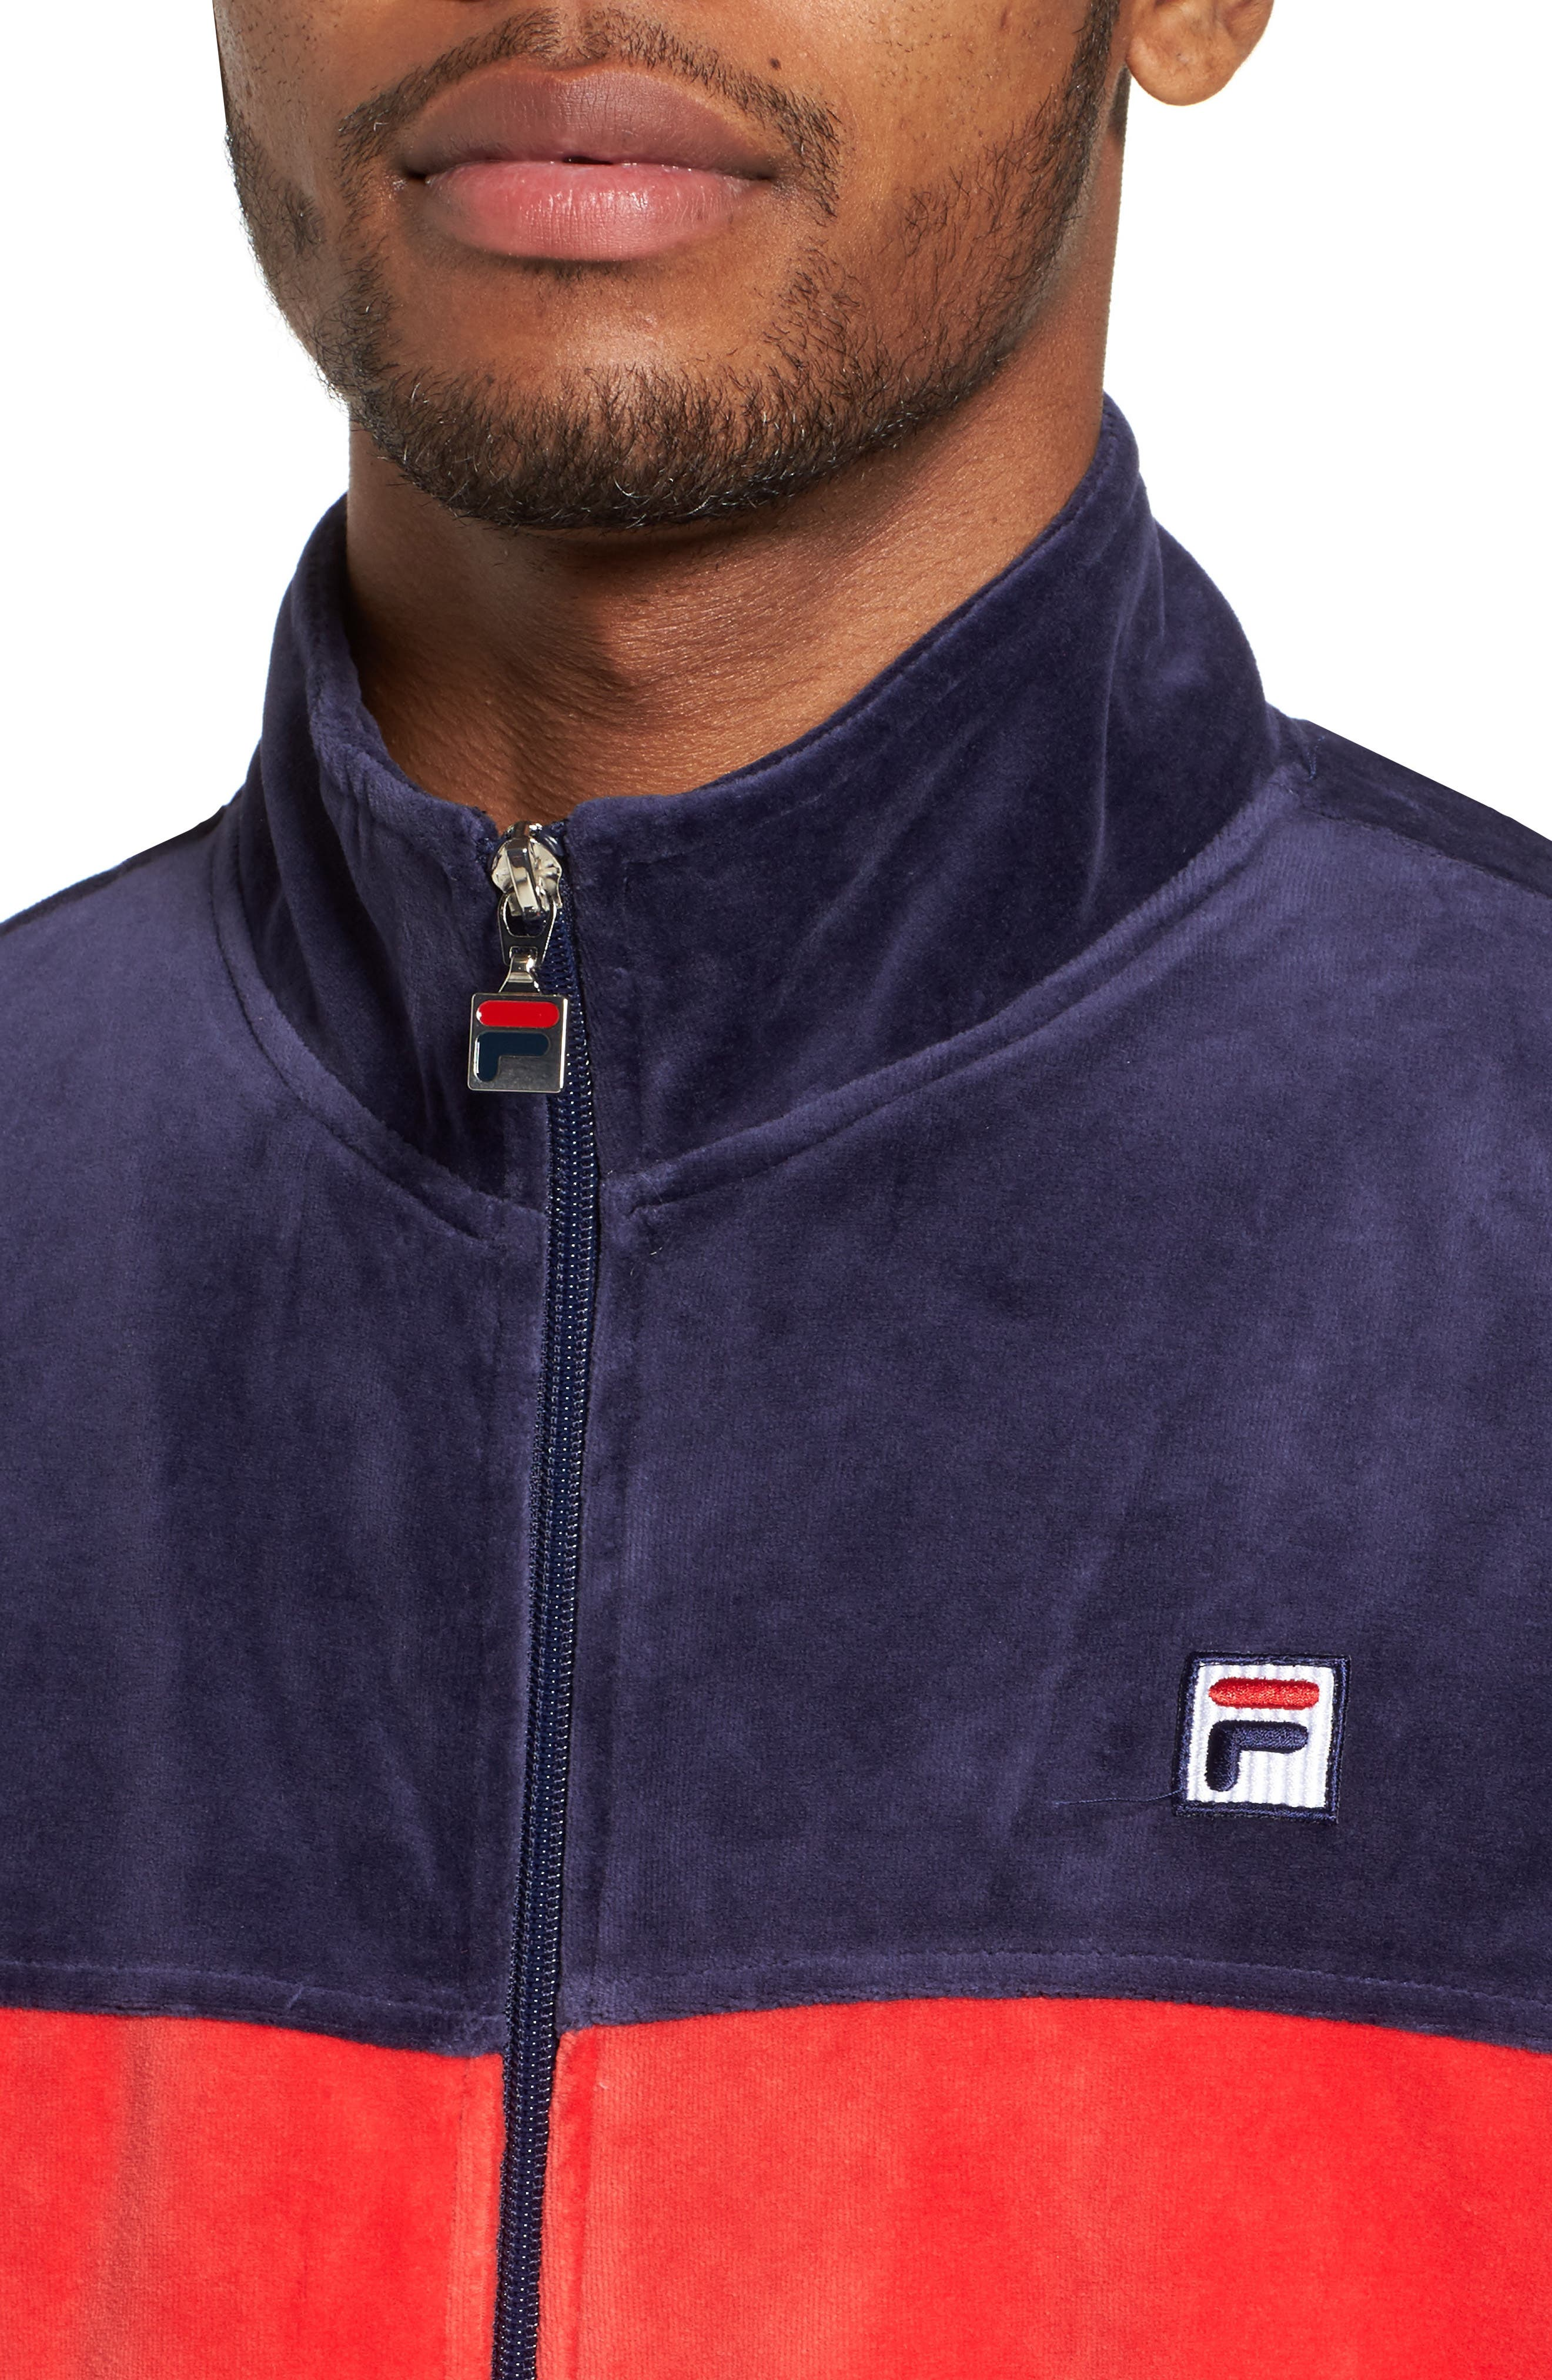 Marcus Velour Track Jacket,                             Alternate thumbnail 4, color,                             Navy/ Chinese Red/ White